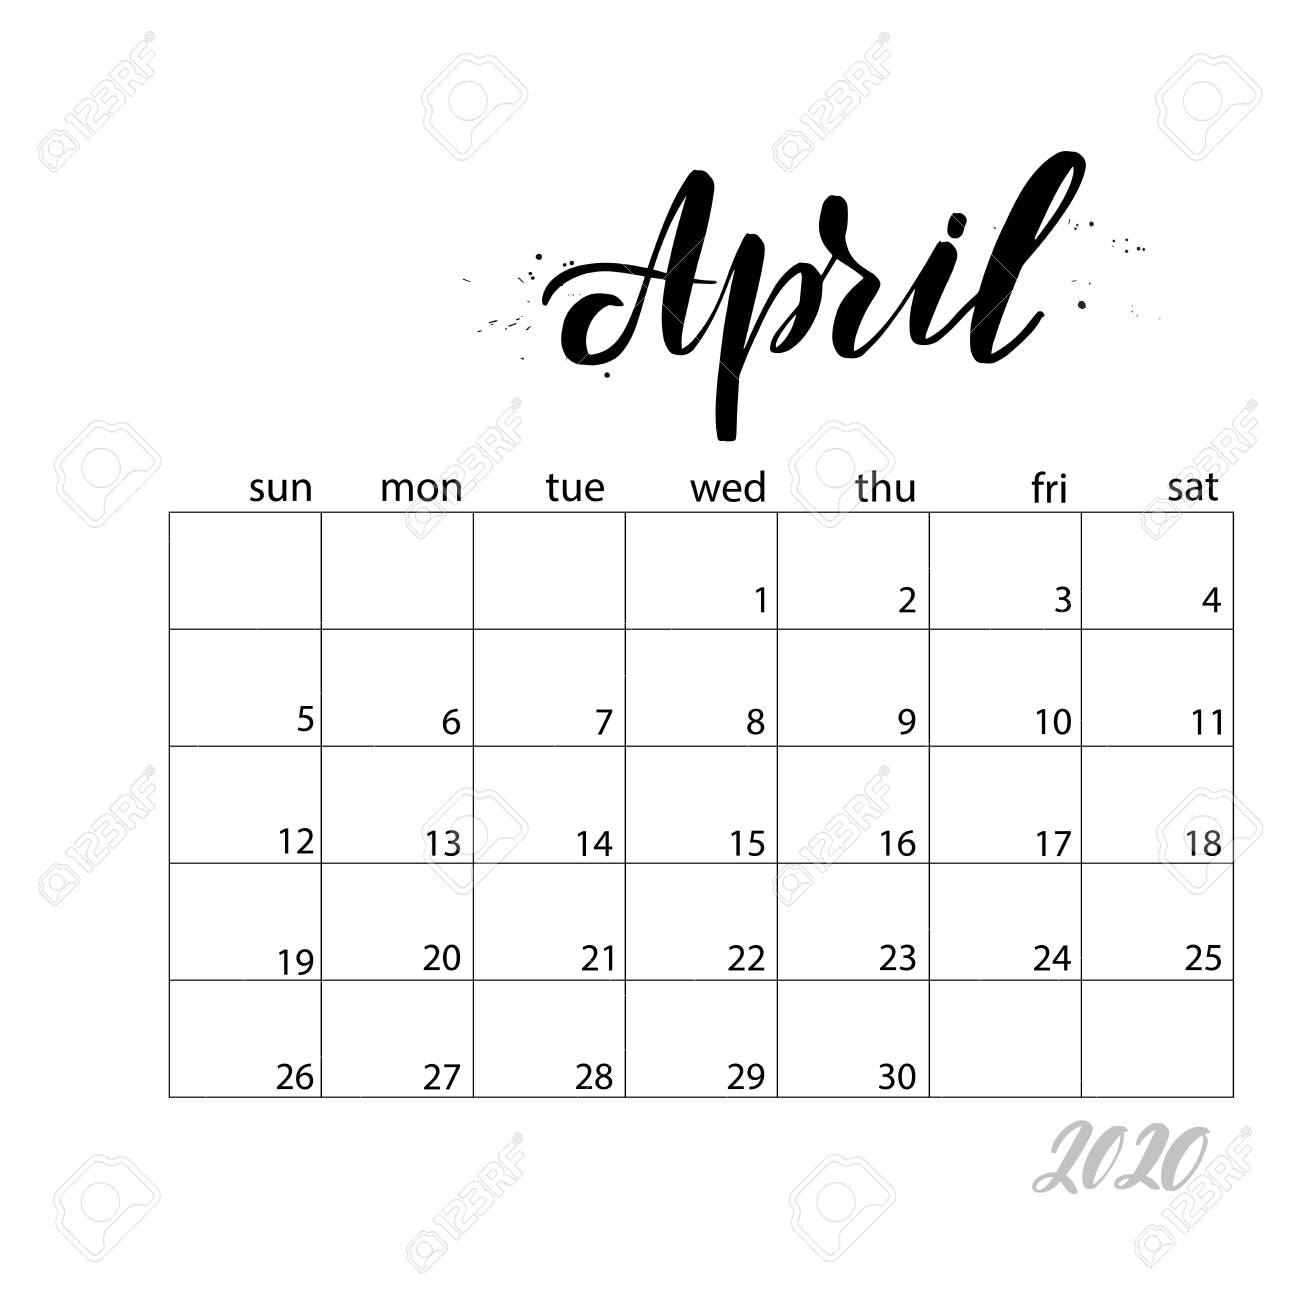 April. Monthly Calendar For 2020 Year. Handwritten Modern Calligraphy..